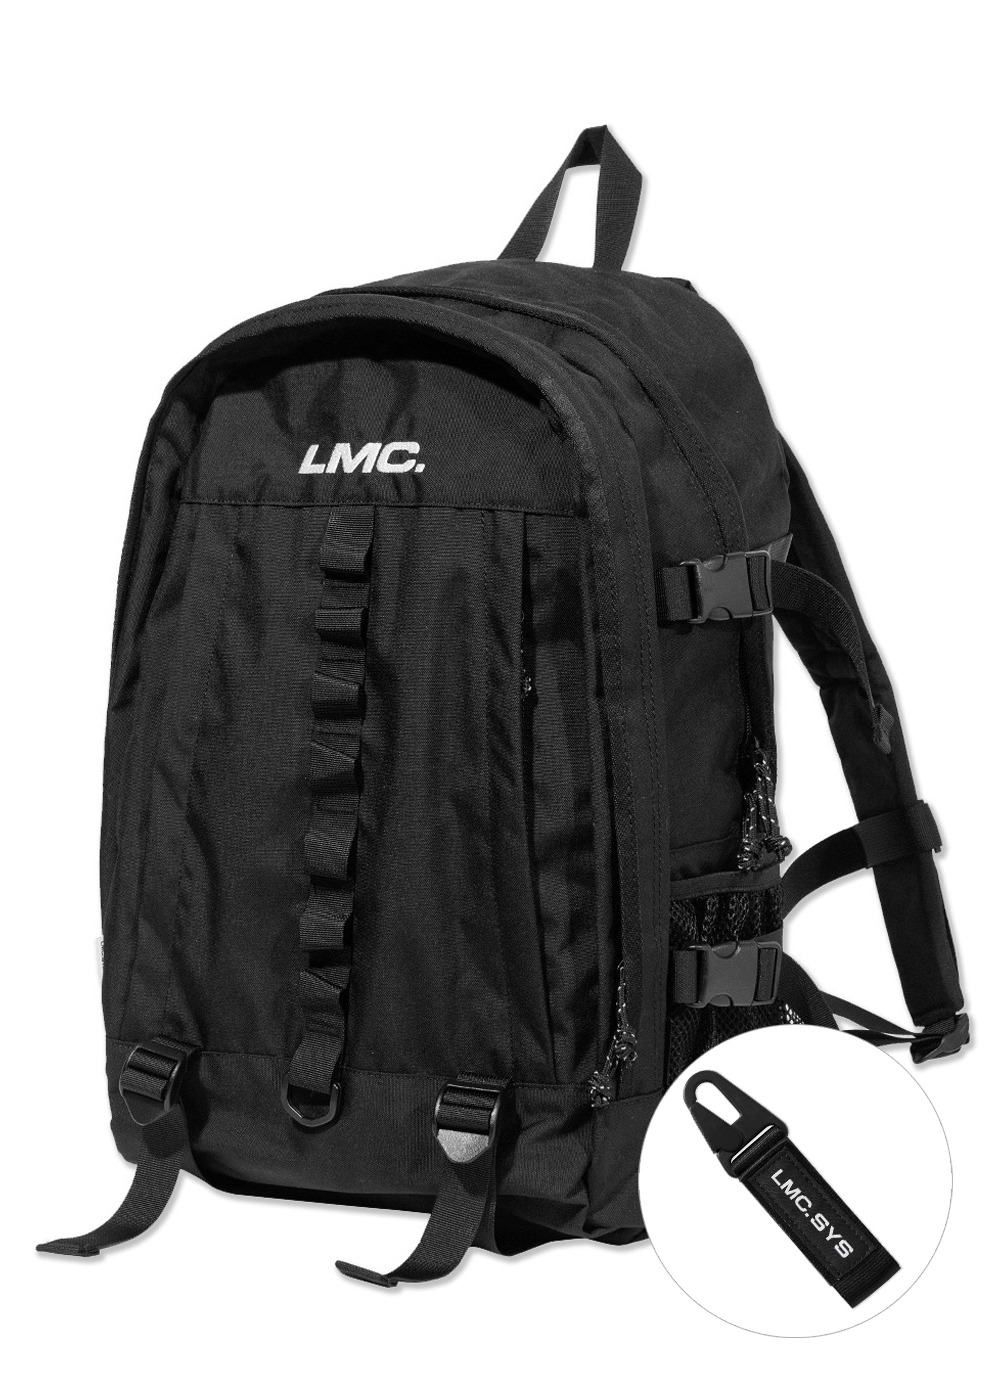 LMC SYSTEM UTILITY BACKPACK Ⅱ black